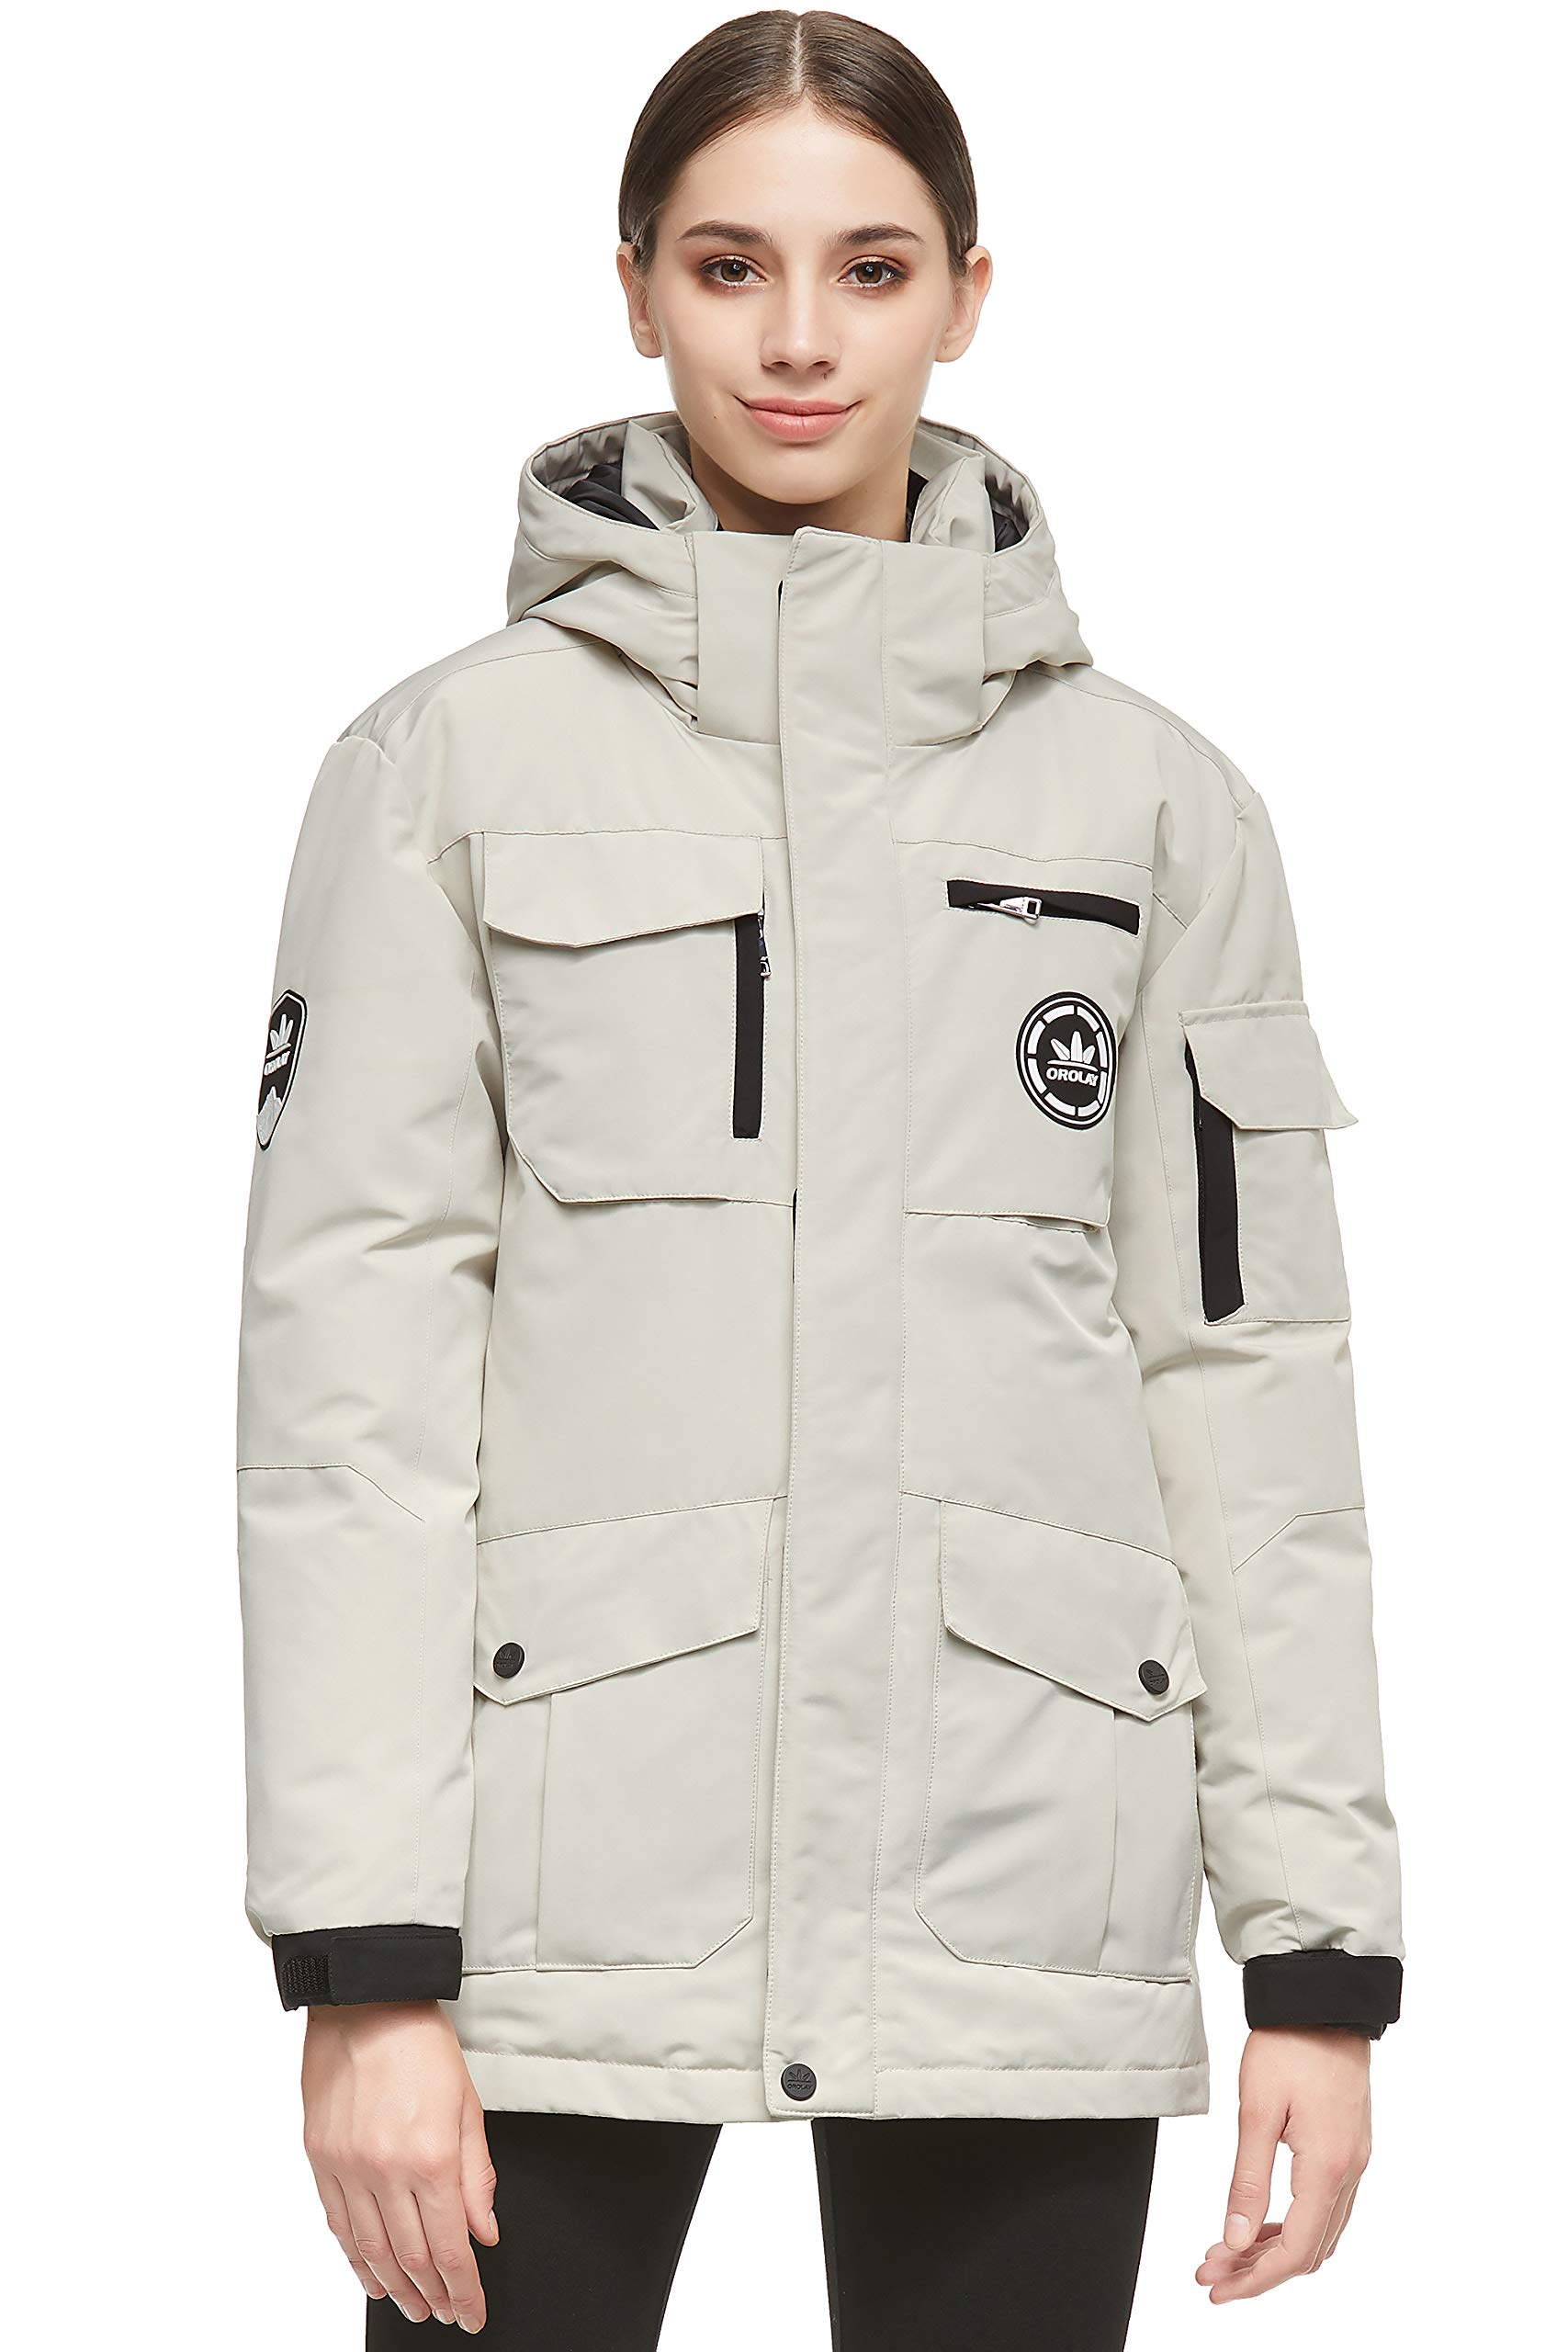 Orolay Women's Warm Parka Jacket Anorak Winter Coat with Multiple Pockets